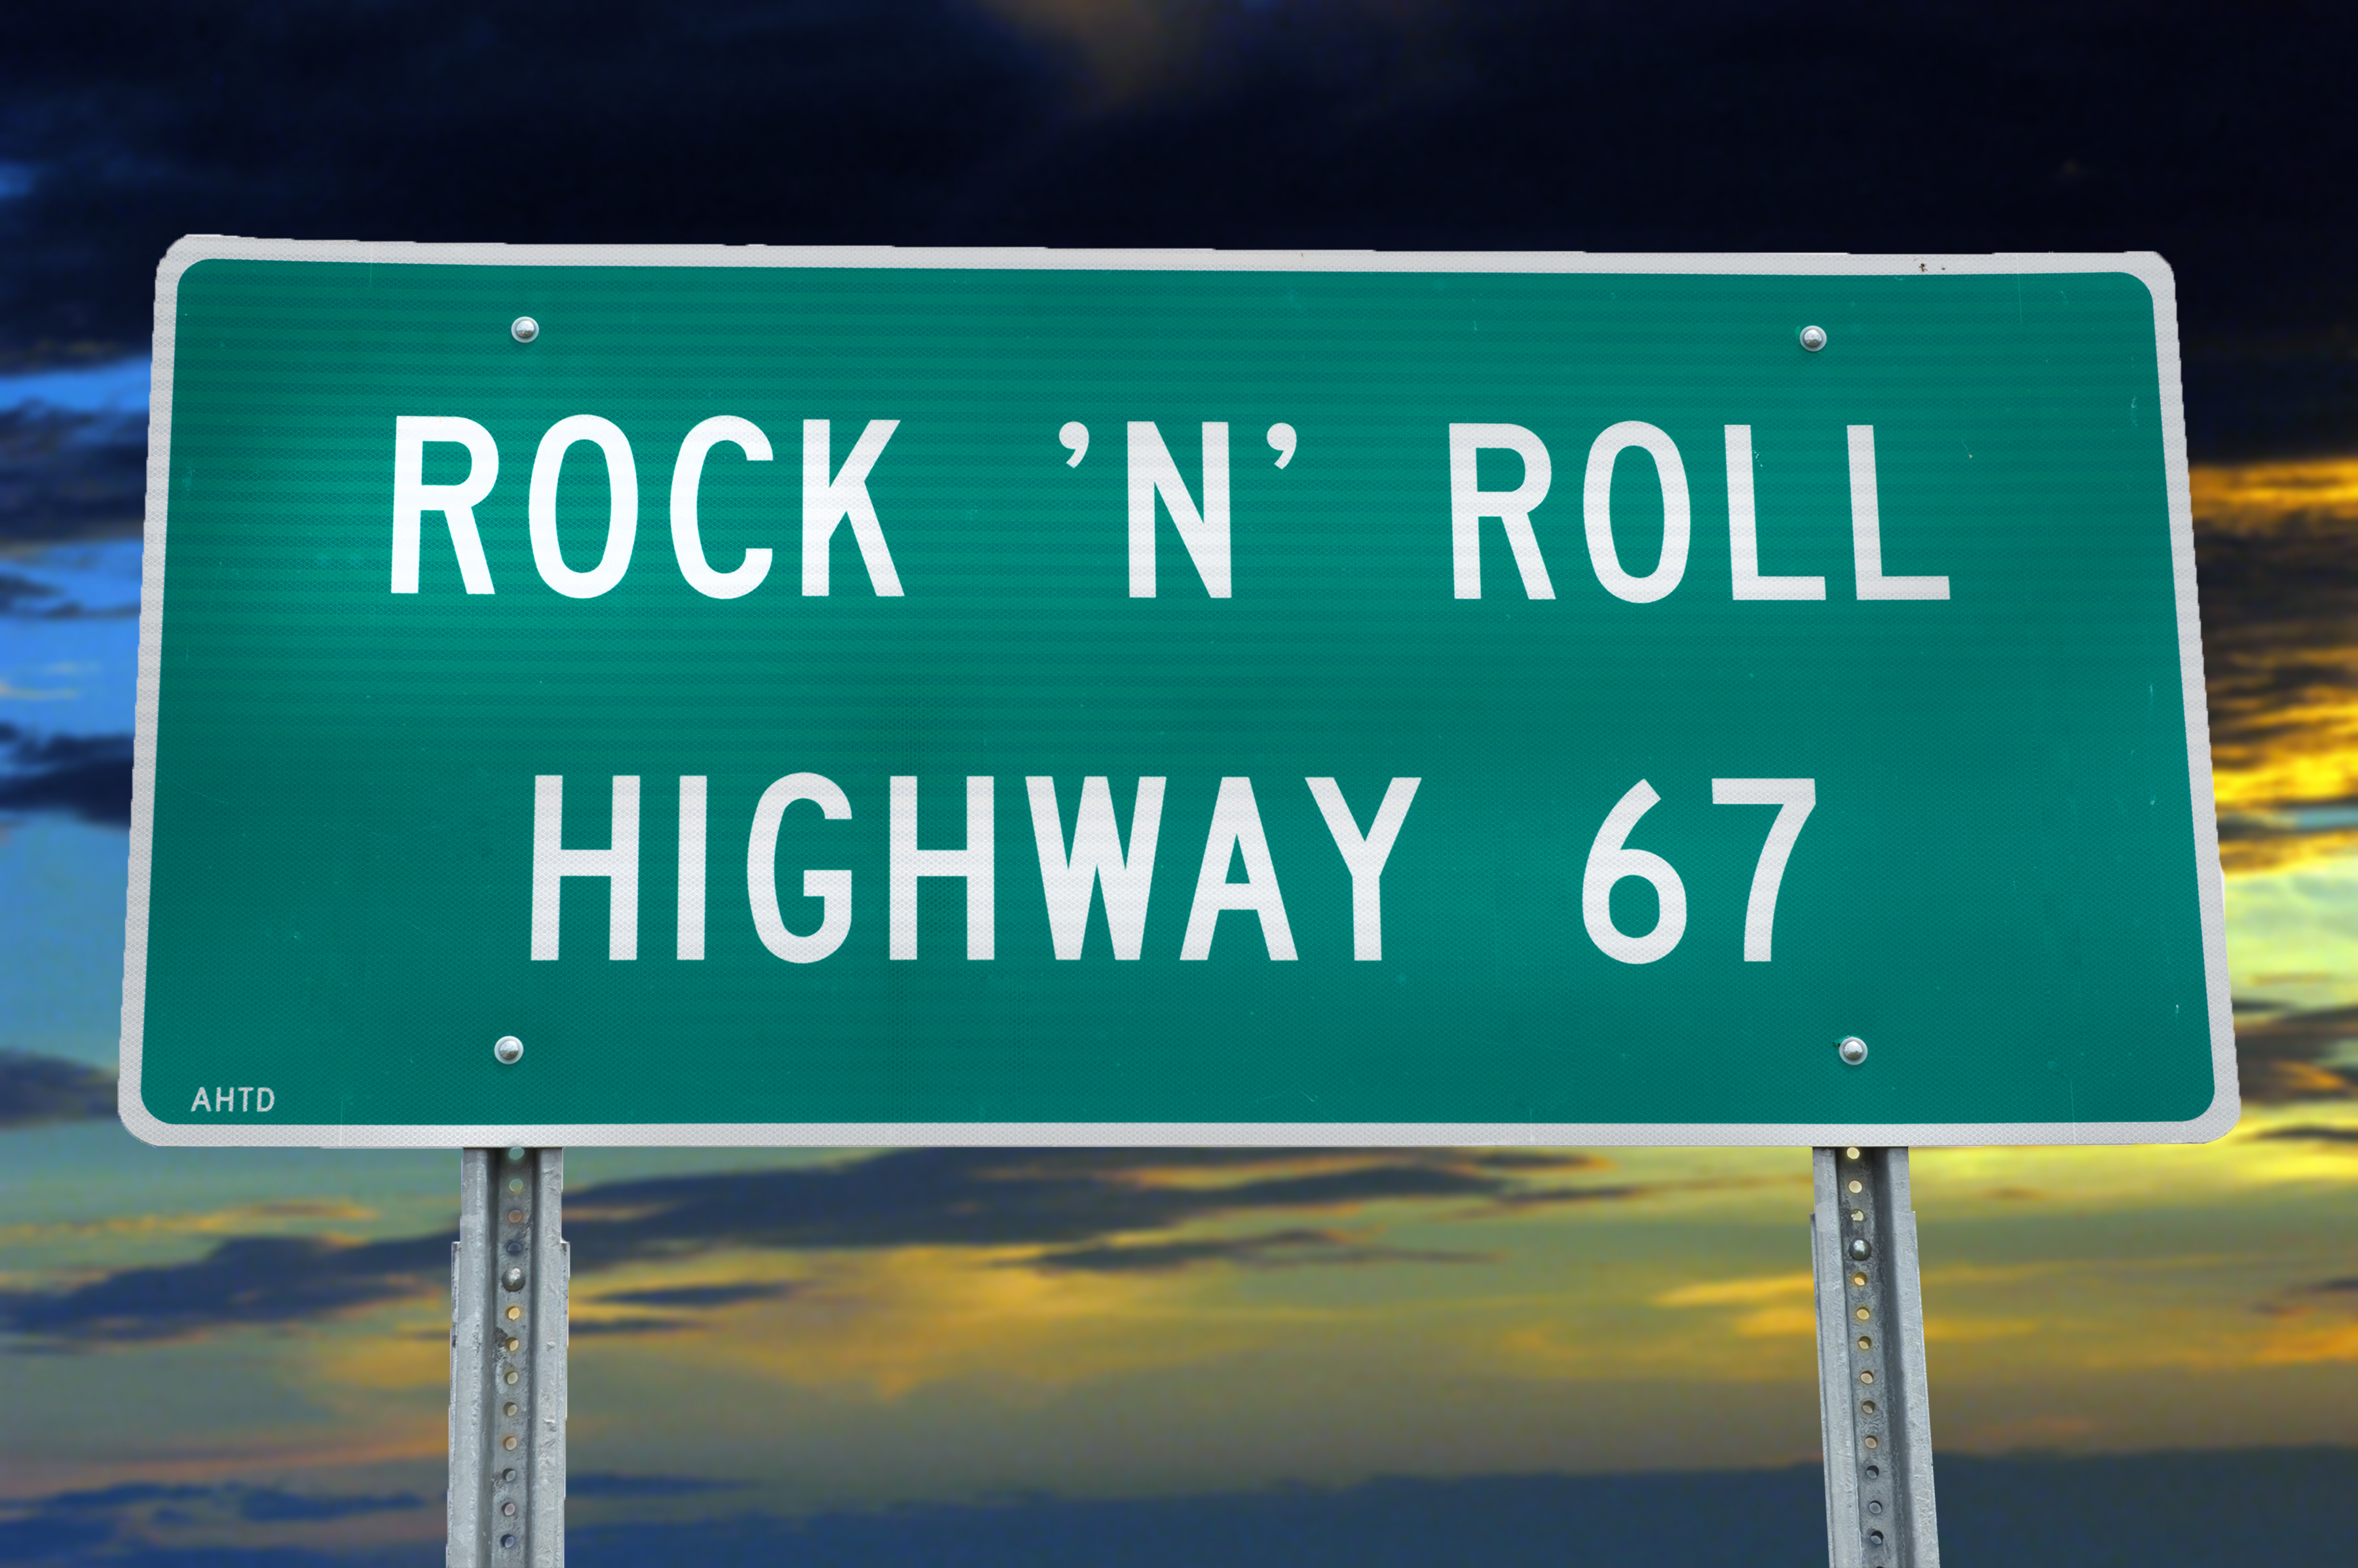 Arkansas's Rock 'n' Roll Highway 67